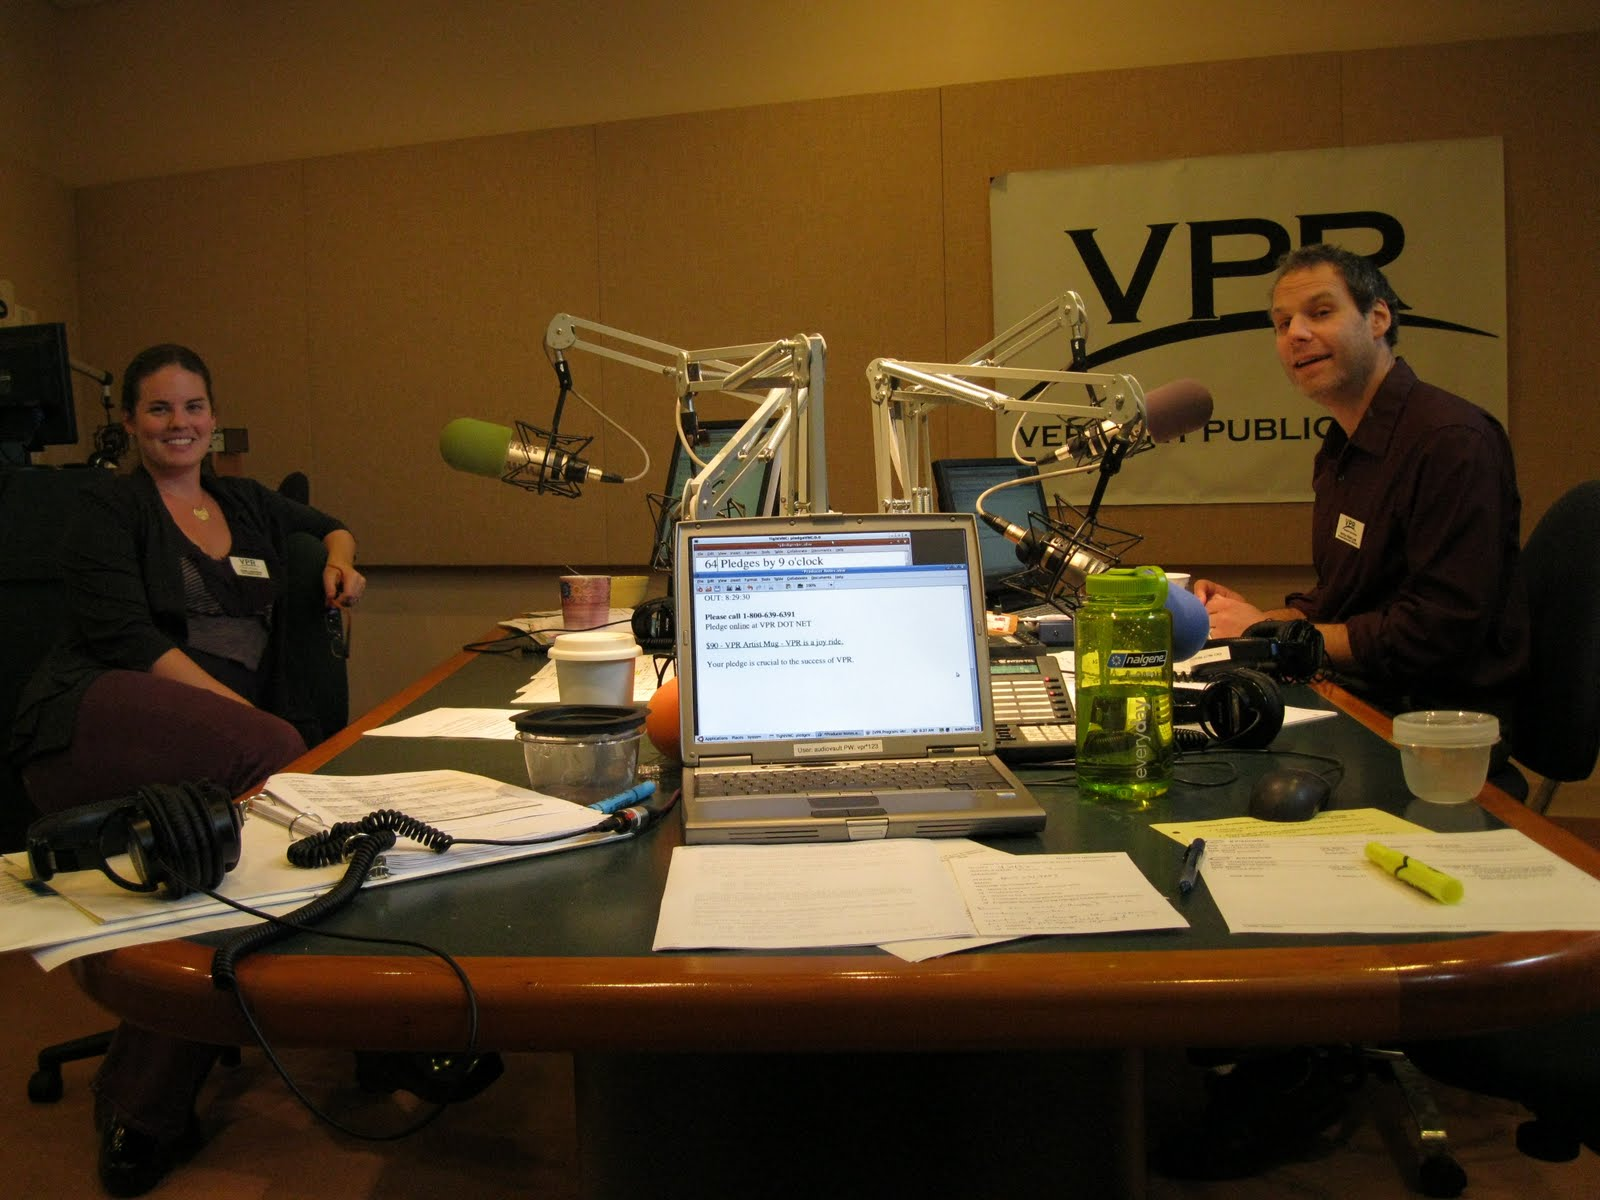 Fundraising On Morning Edition With Mitch Wertlieb And Jane Lindholm We Got To Talking Off The Air About How You Know If Youre A VPR Die Hard